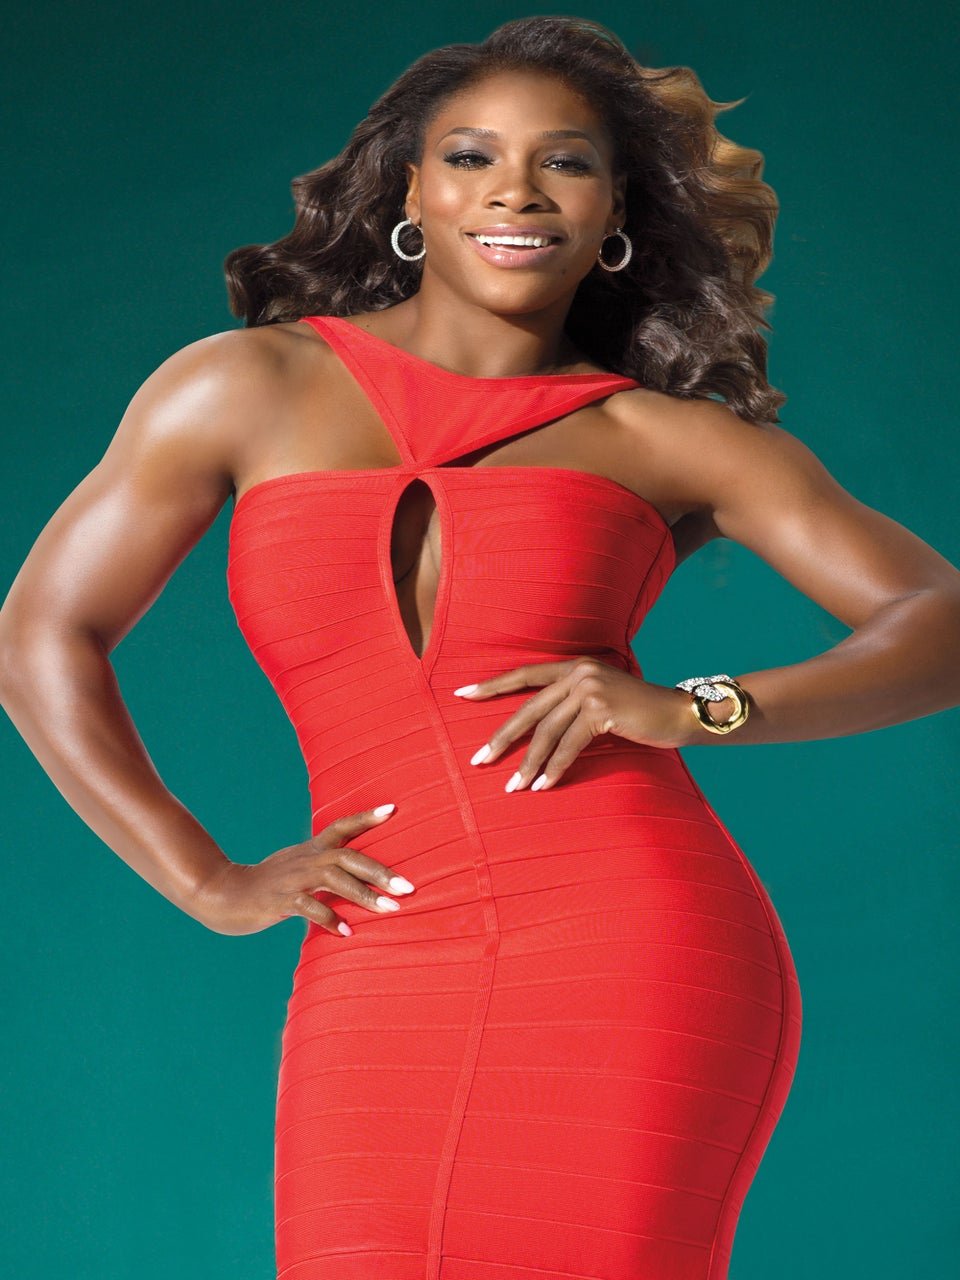 Serena Williams Wants Women To Boss Up and Make The First Move